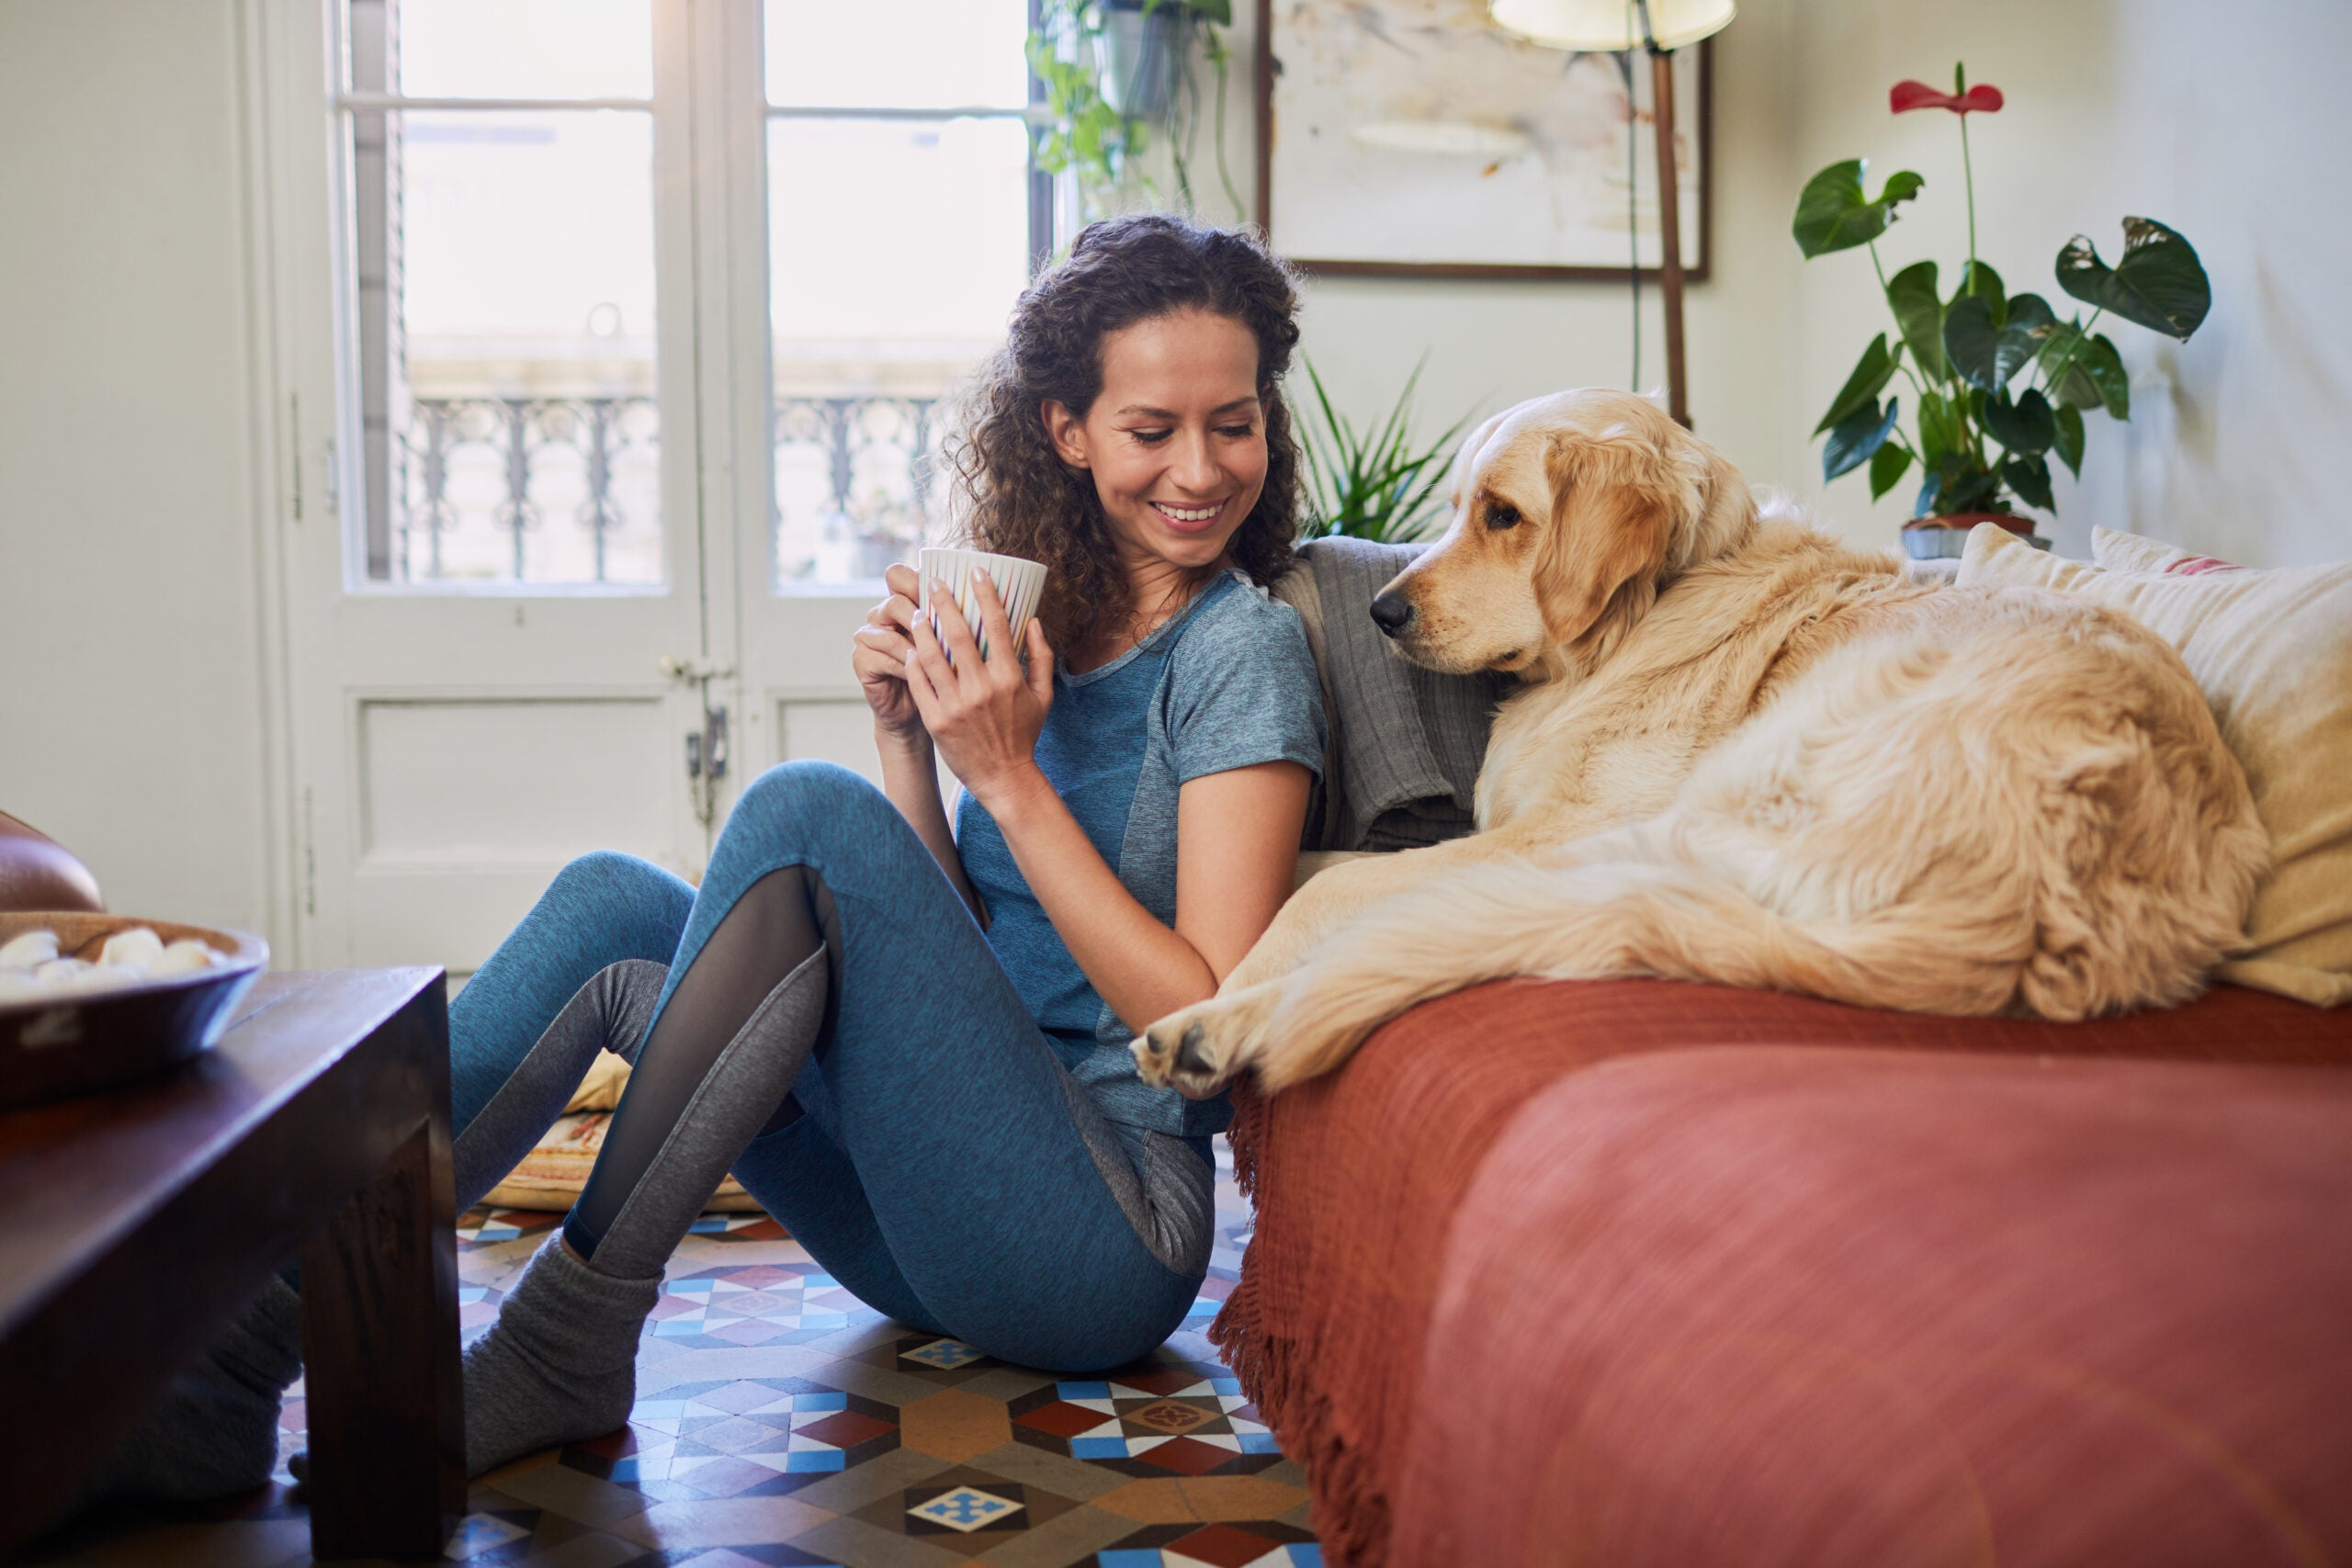 adult woman at home with pet dog.